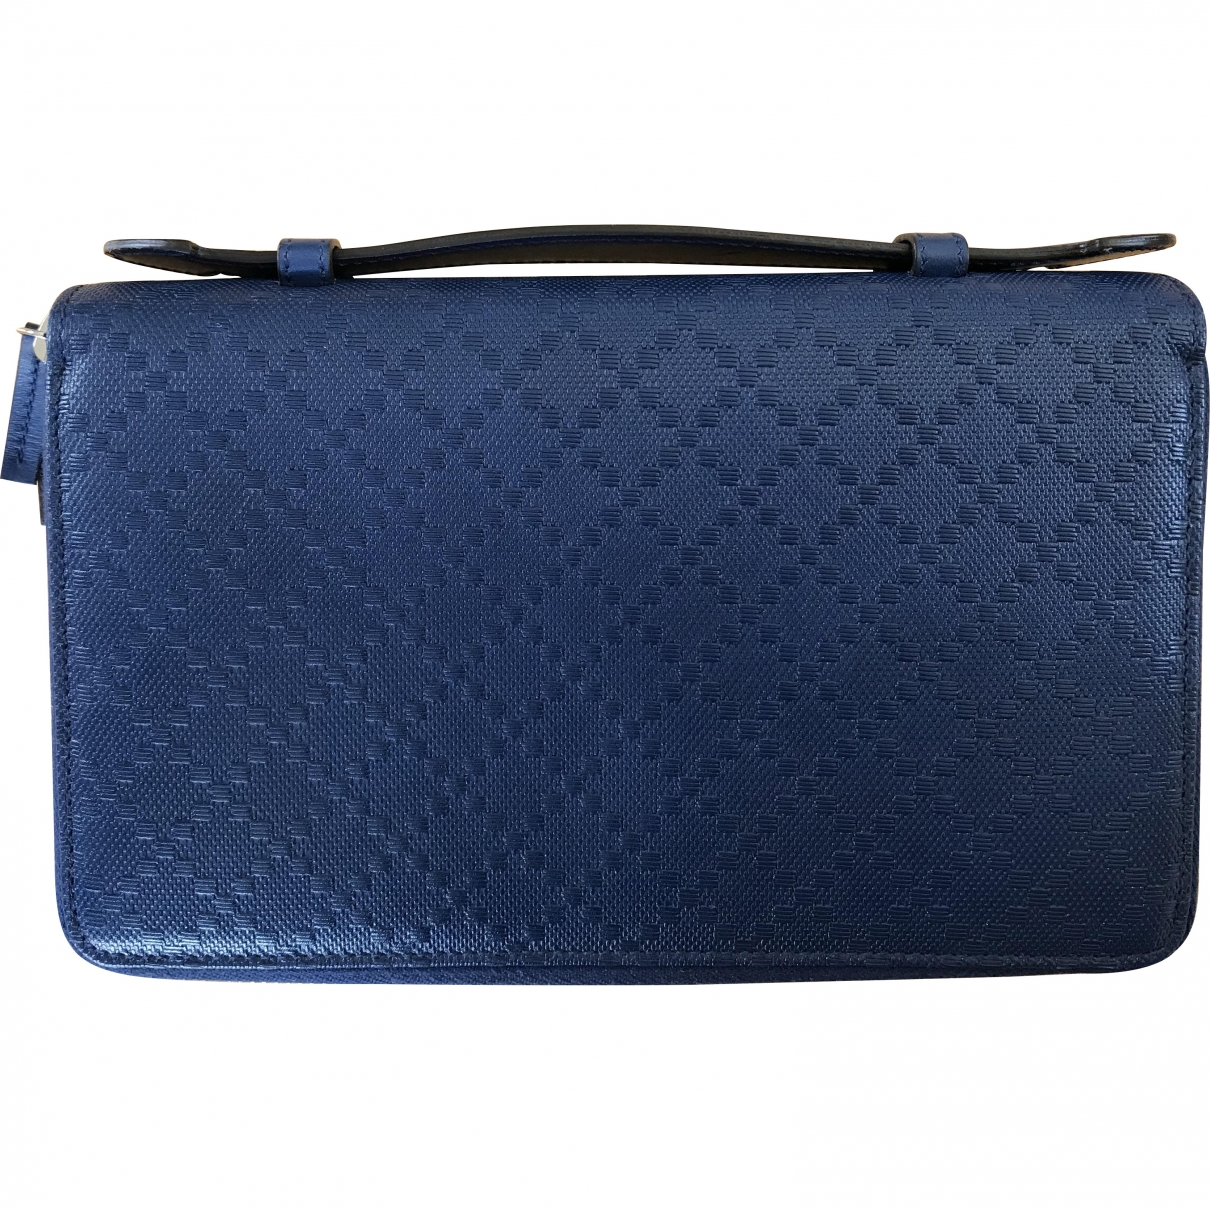 Gucci \N Blue Leather Purses, wallet & cases for Women \N